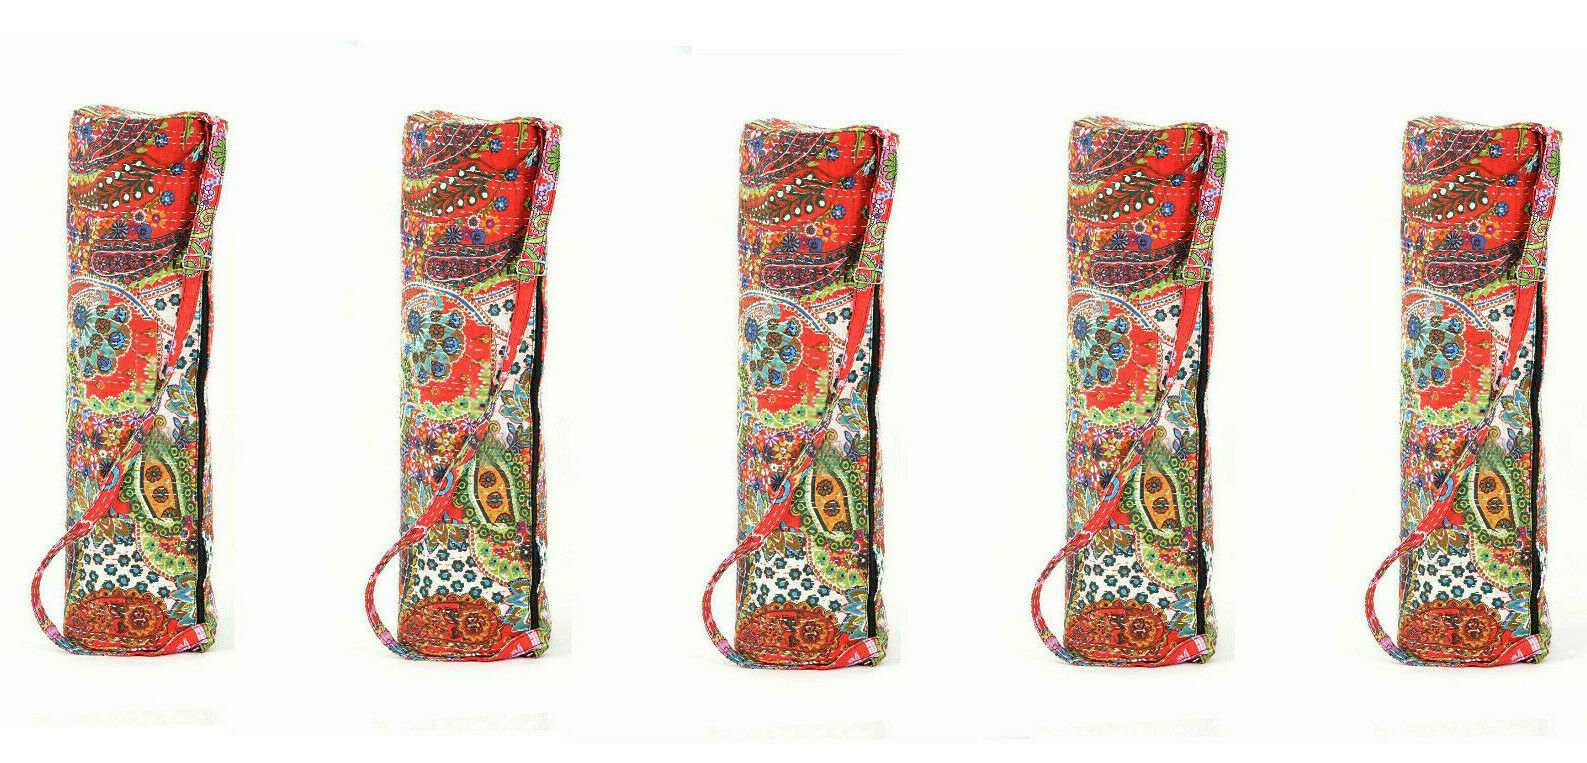 Indian Cotton Paisley Printed Hand Quilted Yoga Bag Mat Cover Gym rosso Beach Bag